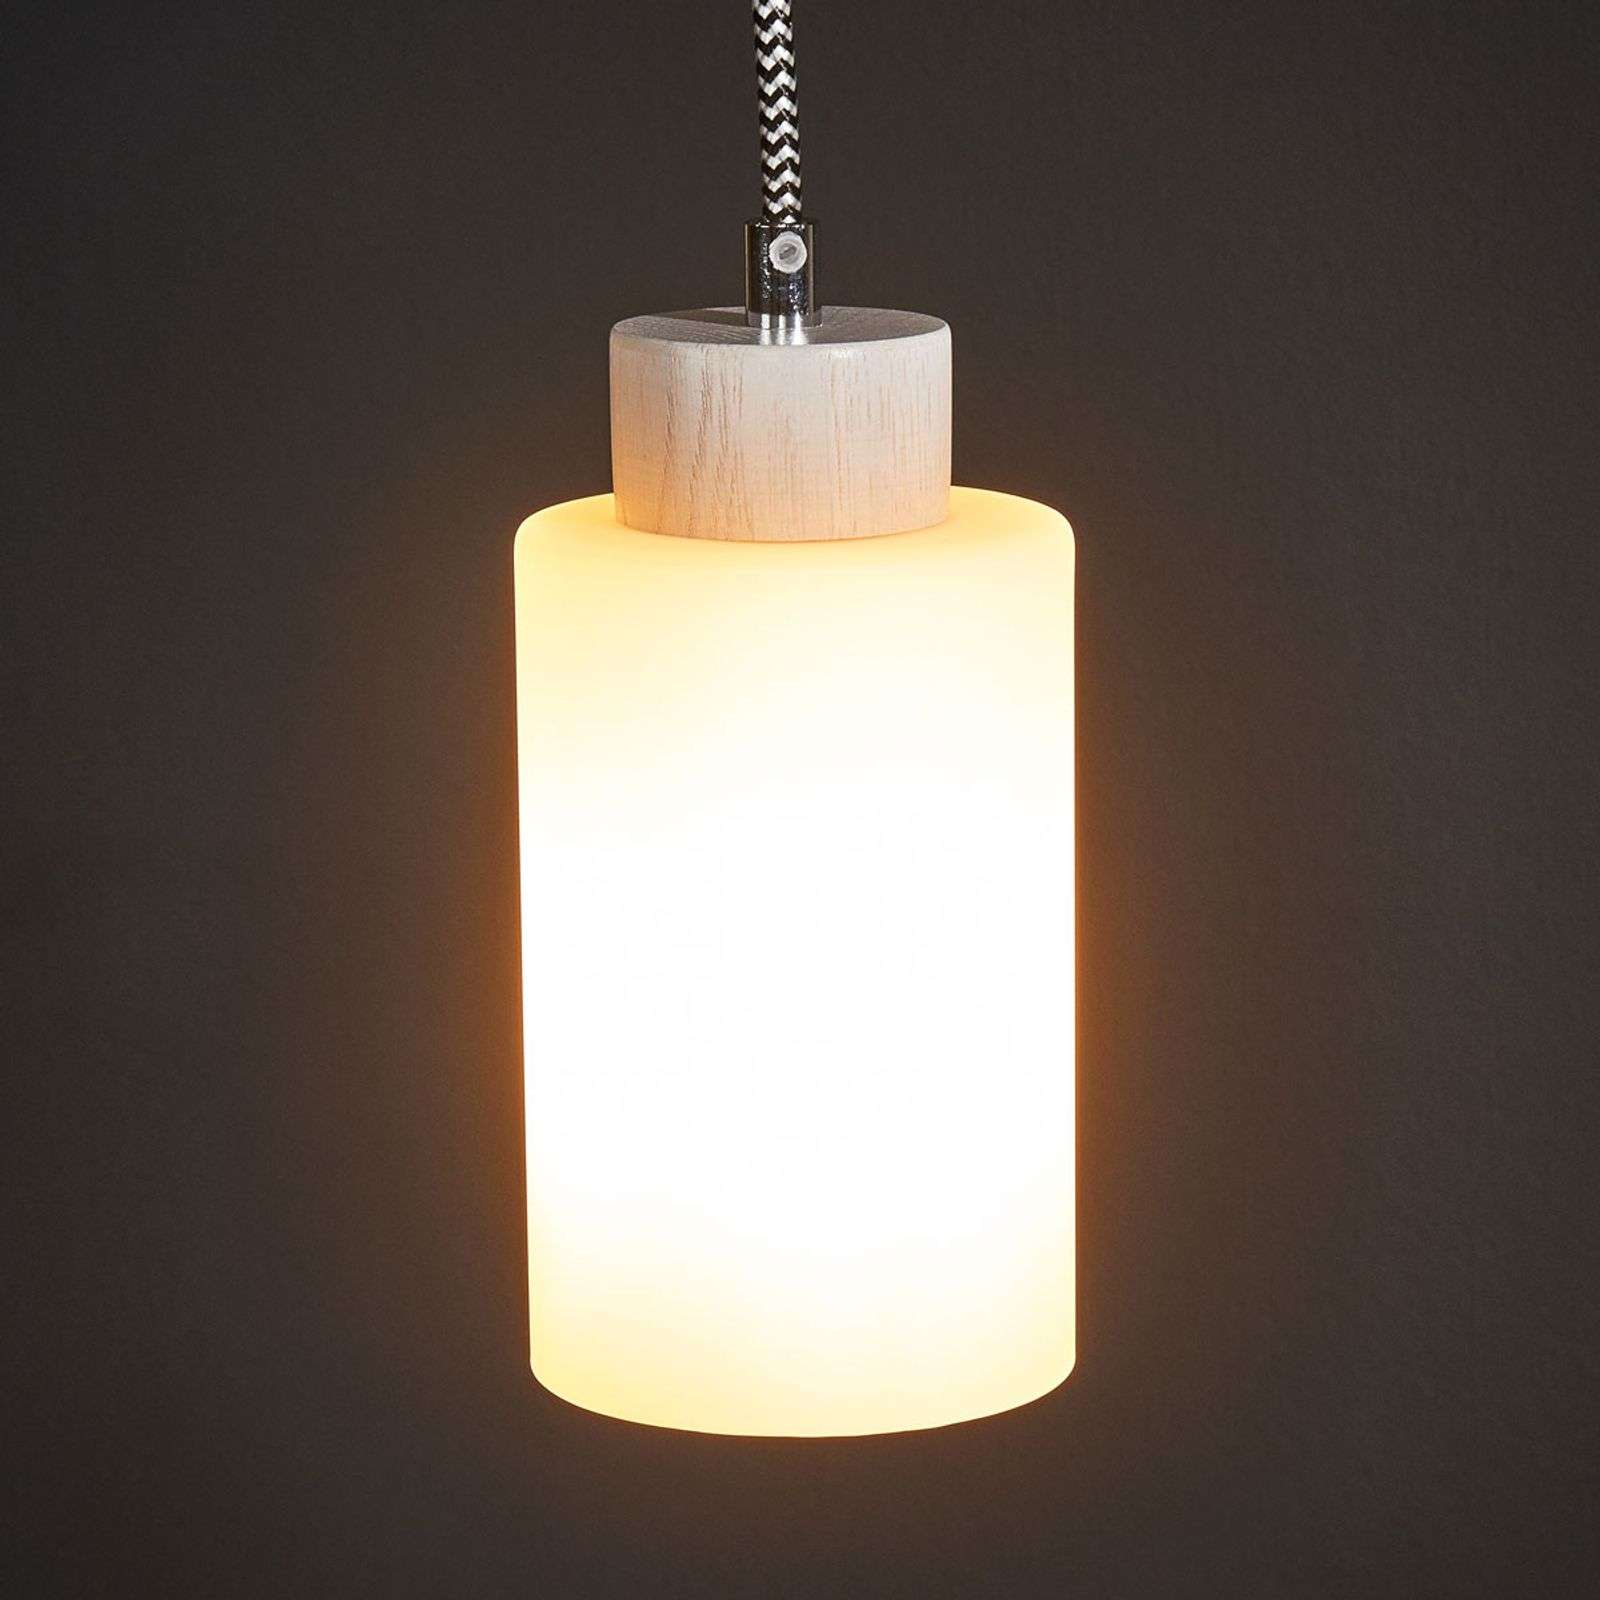 Suspension à une lampe Bosco blanc